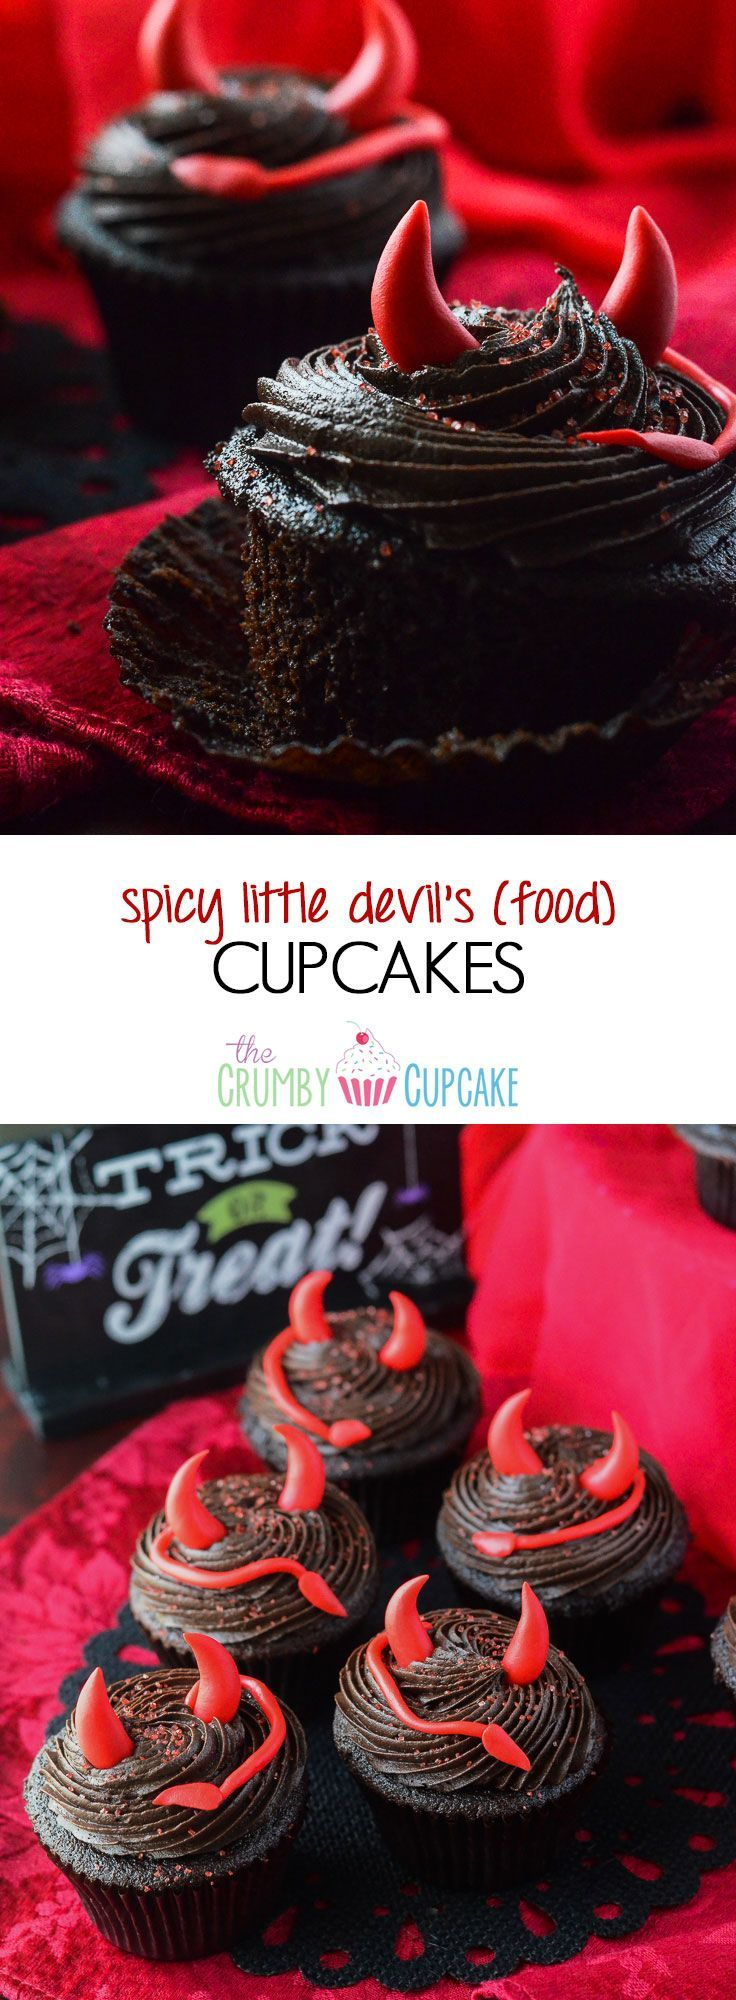 Spicy Devil's (Food) Cupcakes #SundaySupper | Recette